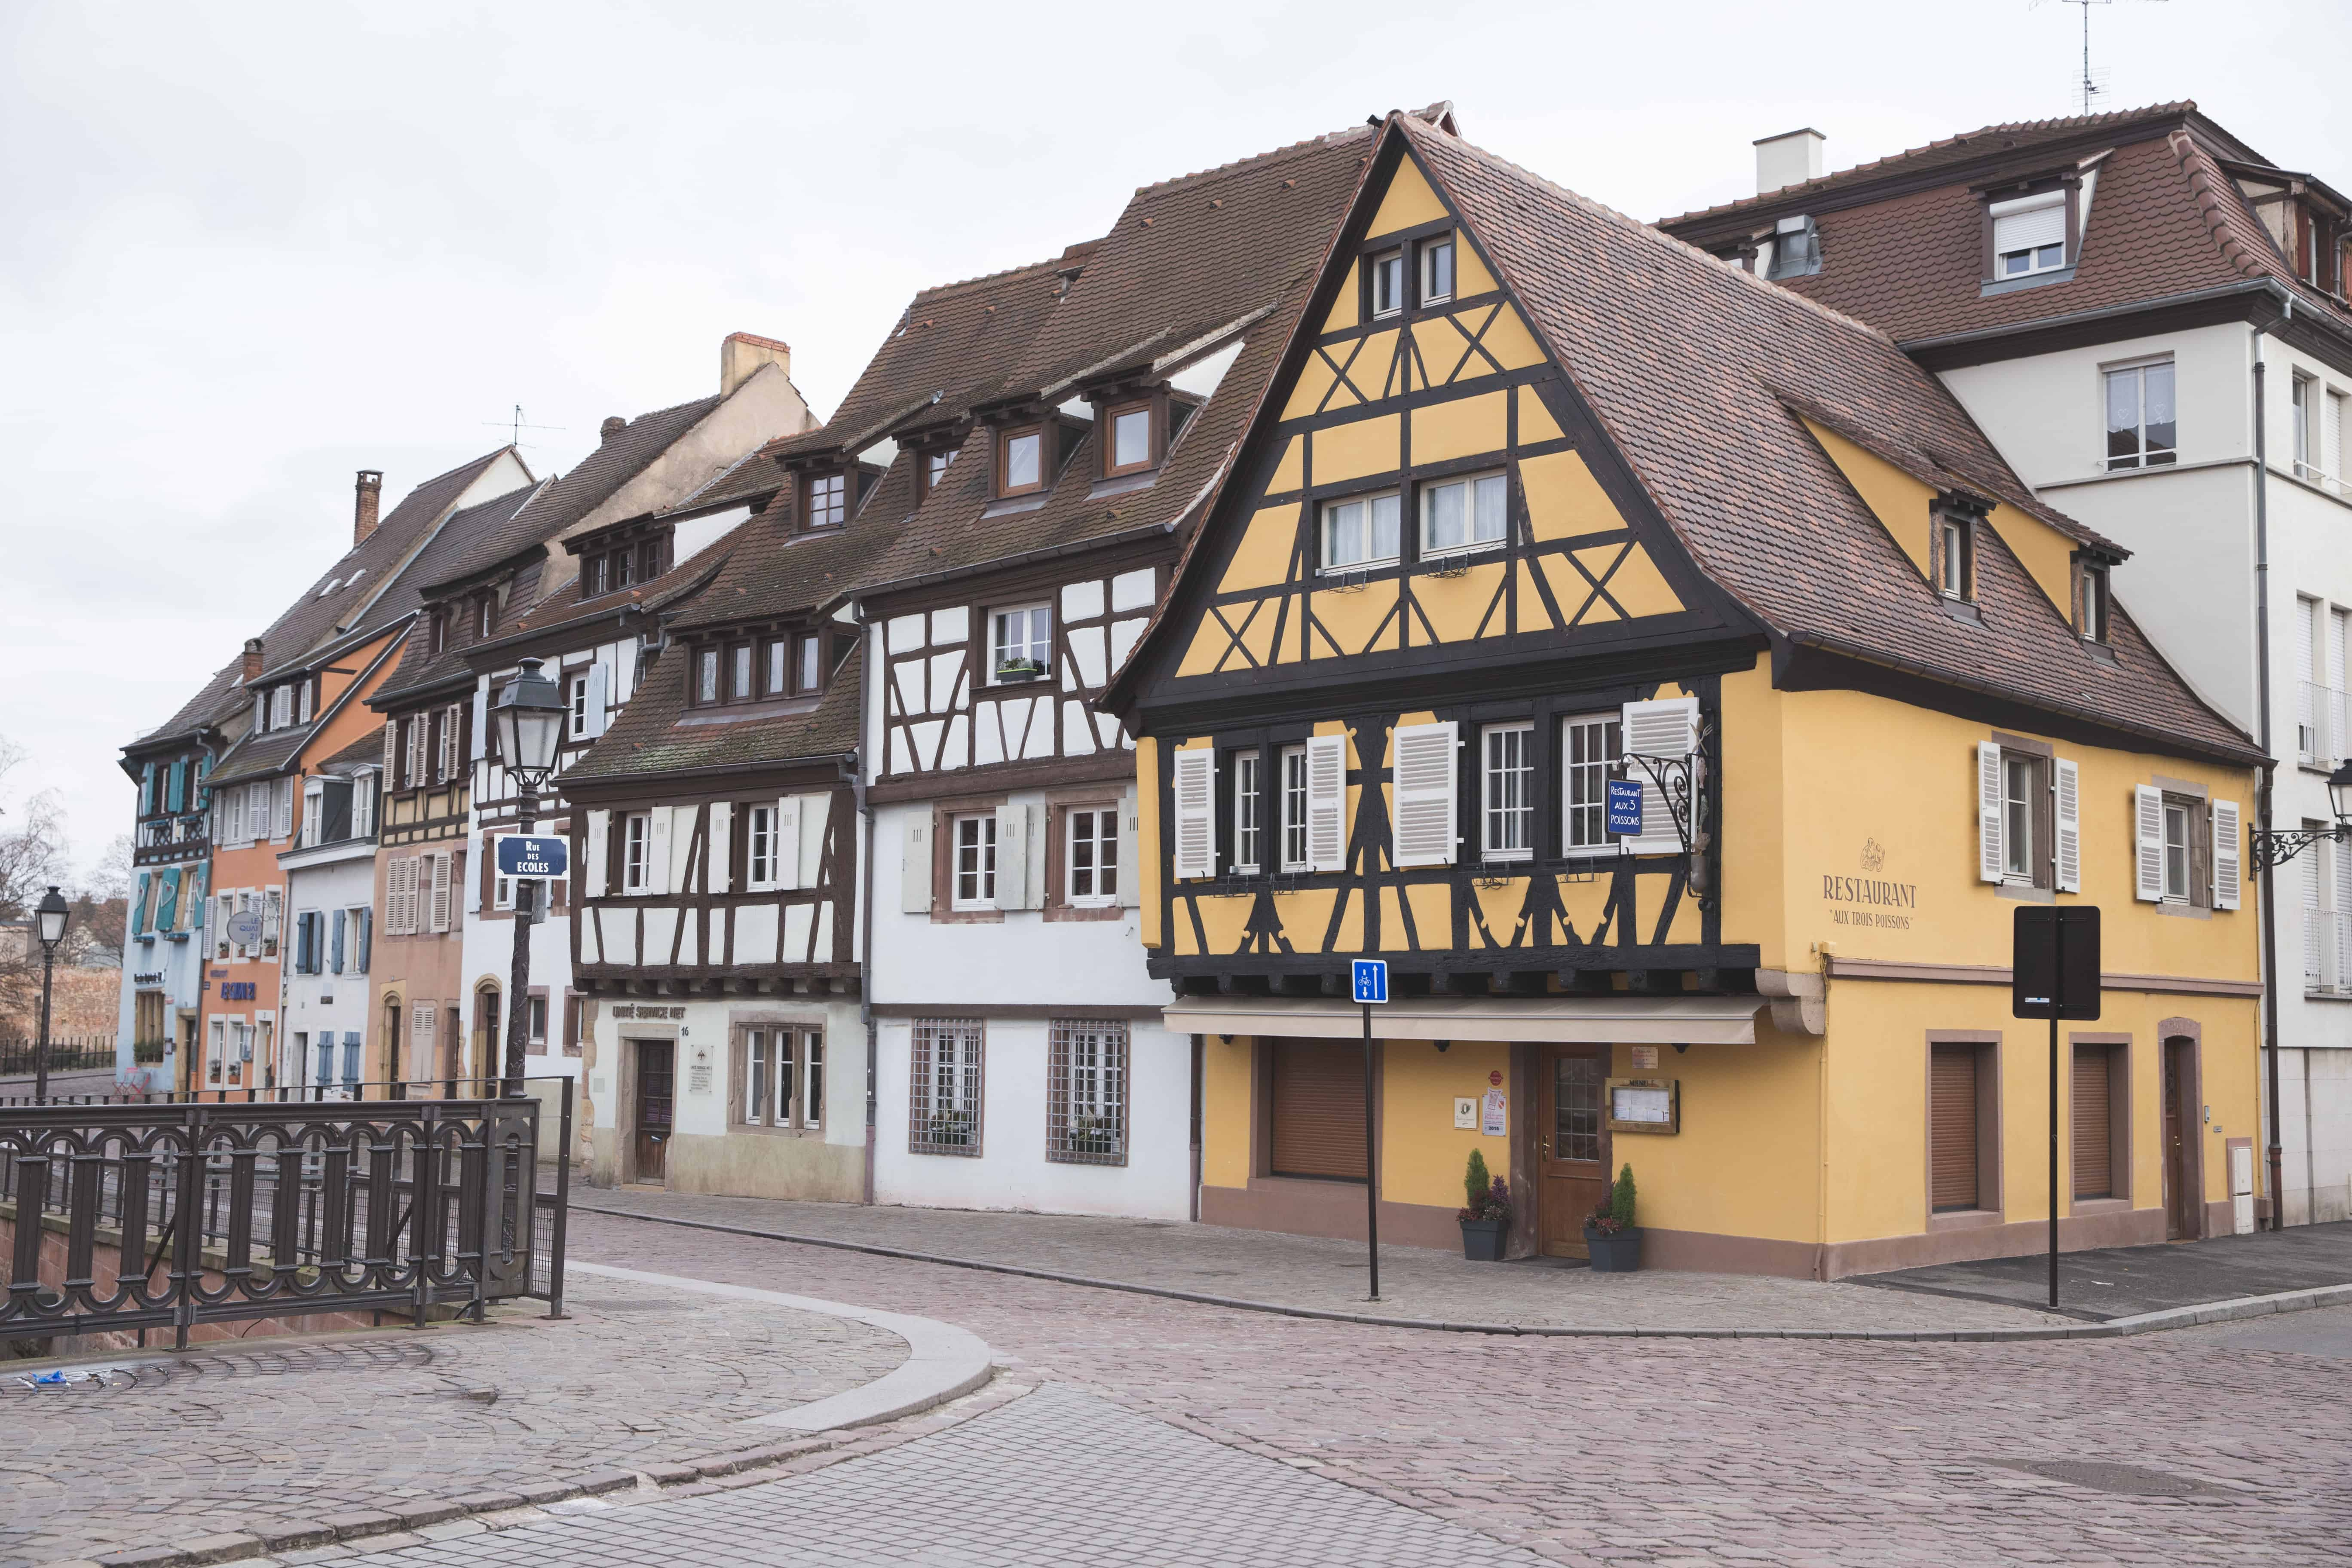 Colmar, France in the Alsace region is full of cobblestone streets and colorful half-timbered buildings and houses